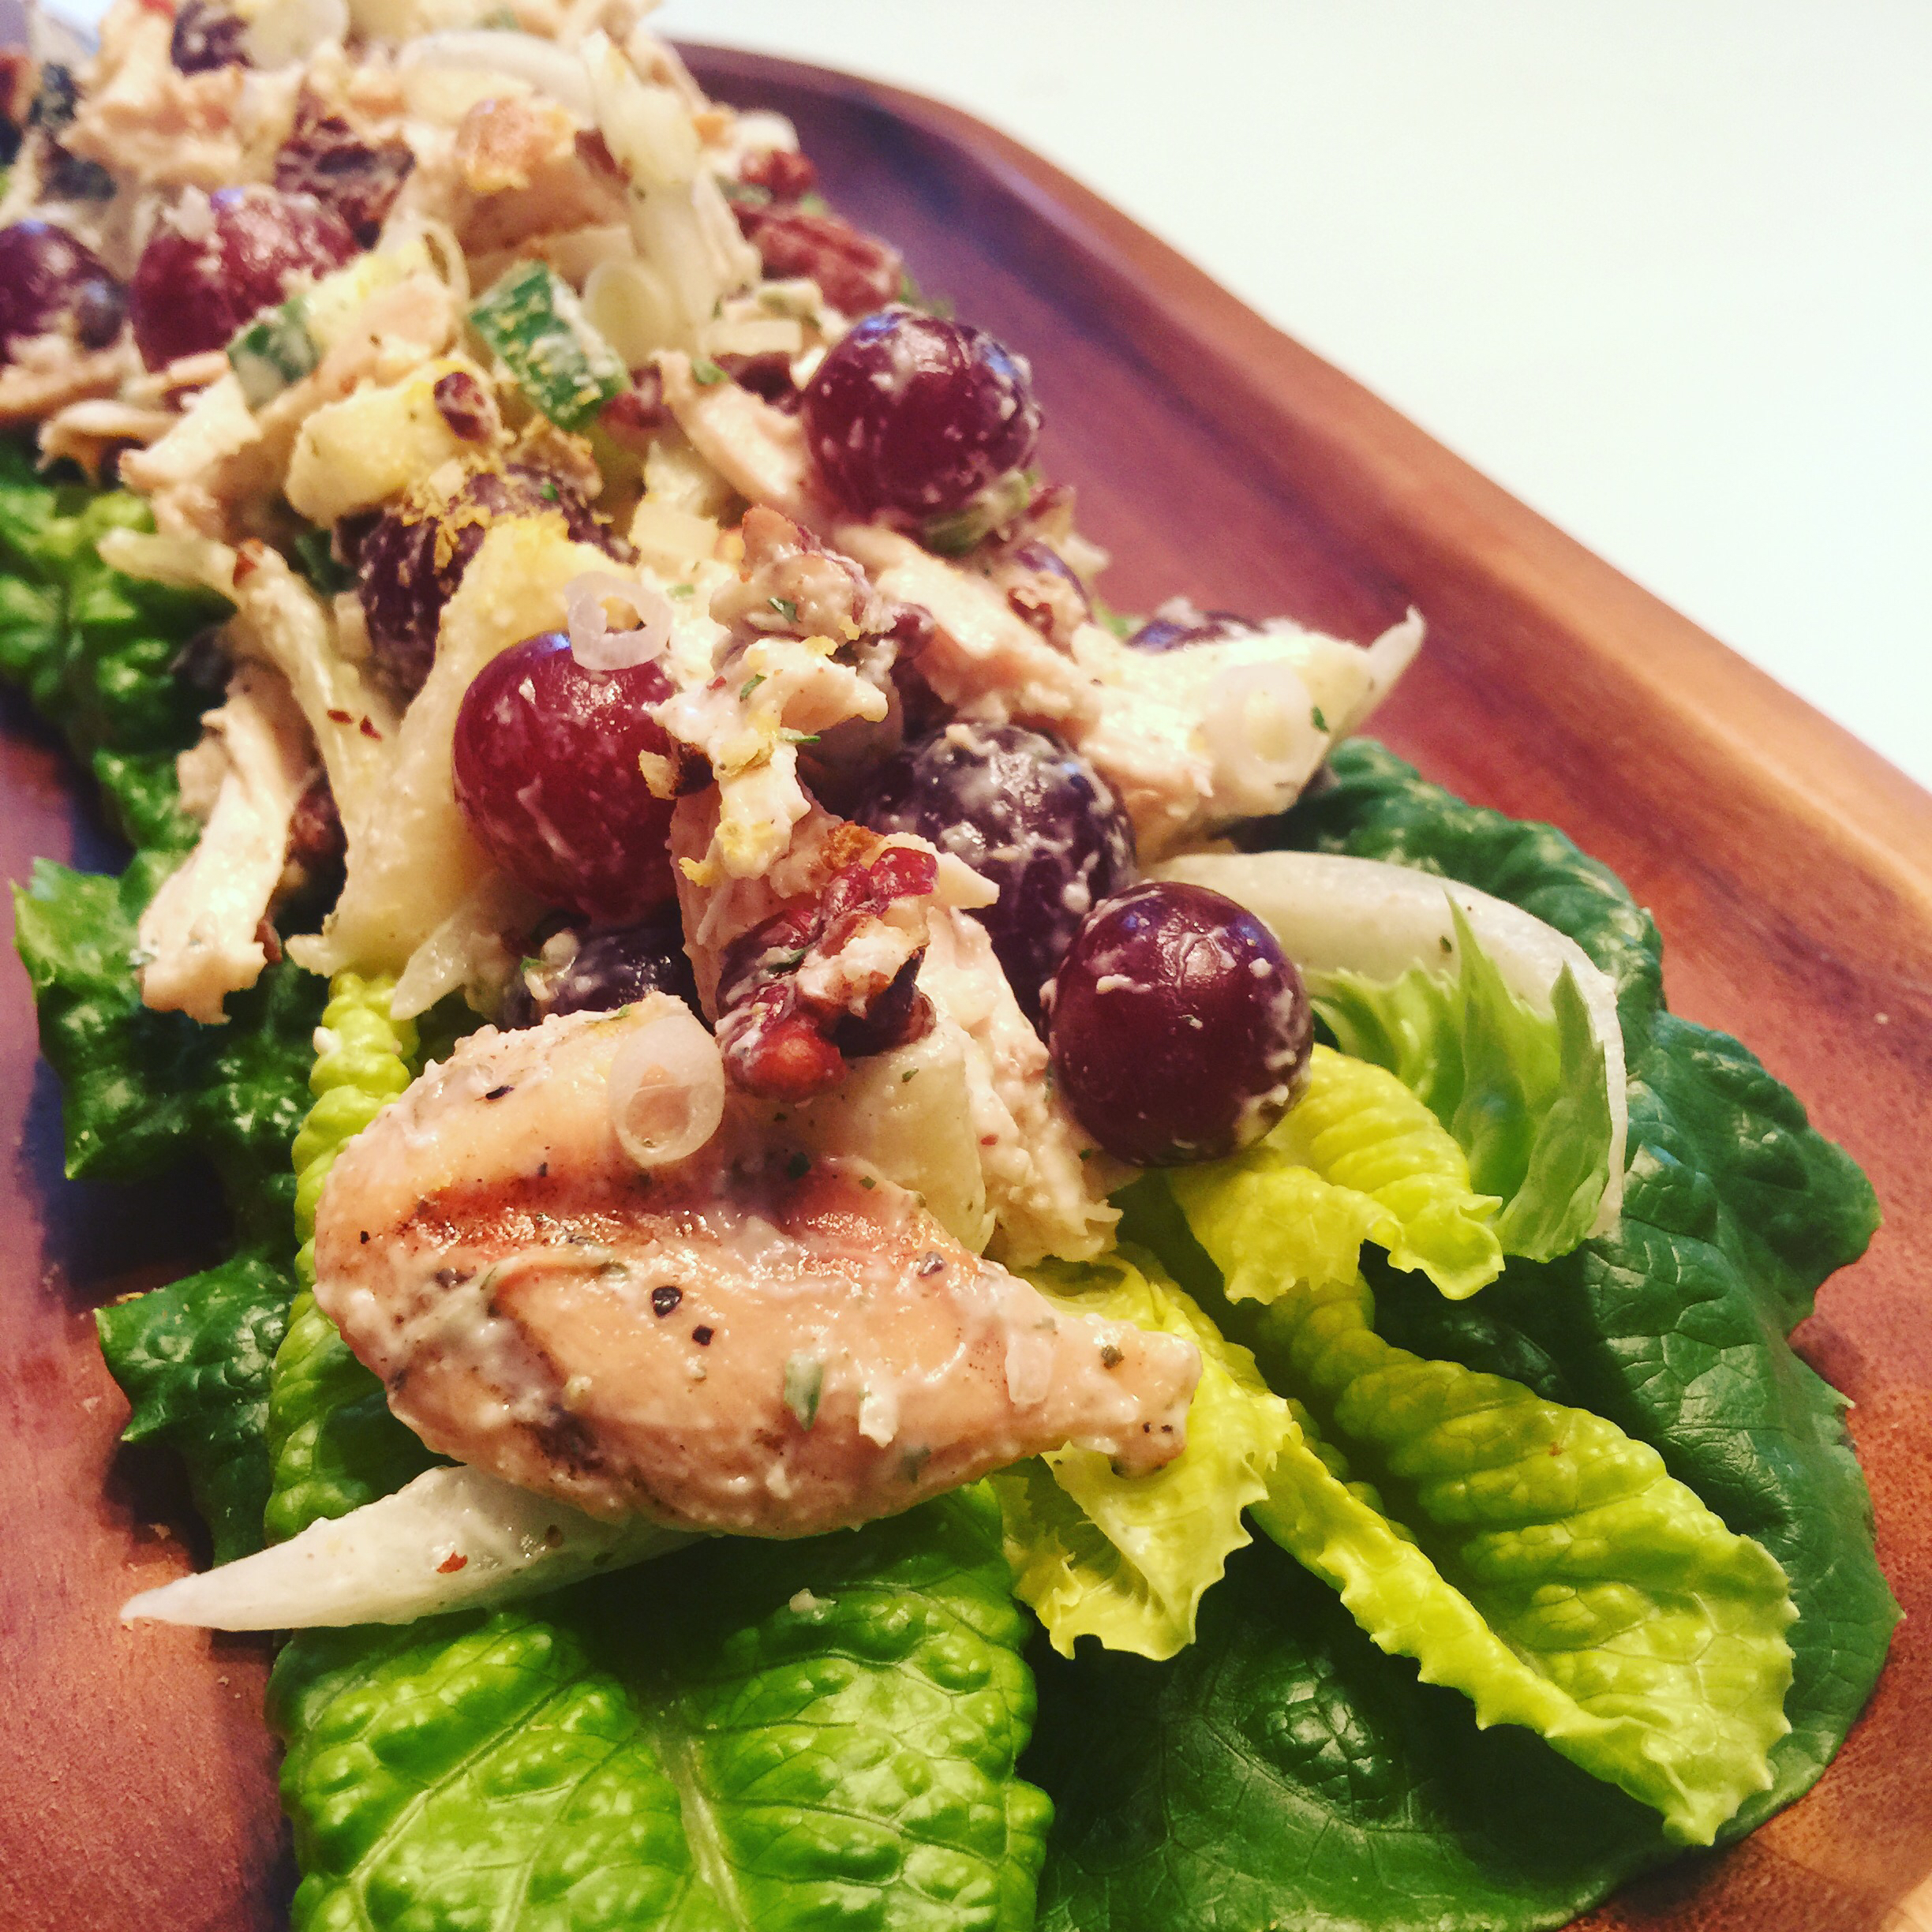 Chicken Salad with Apples, Grapes, and Walnuts